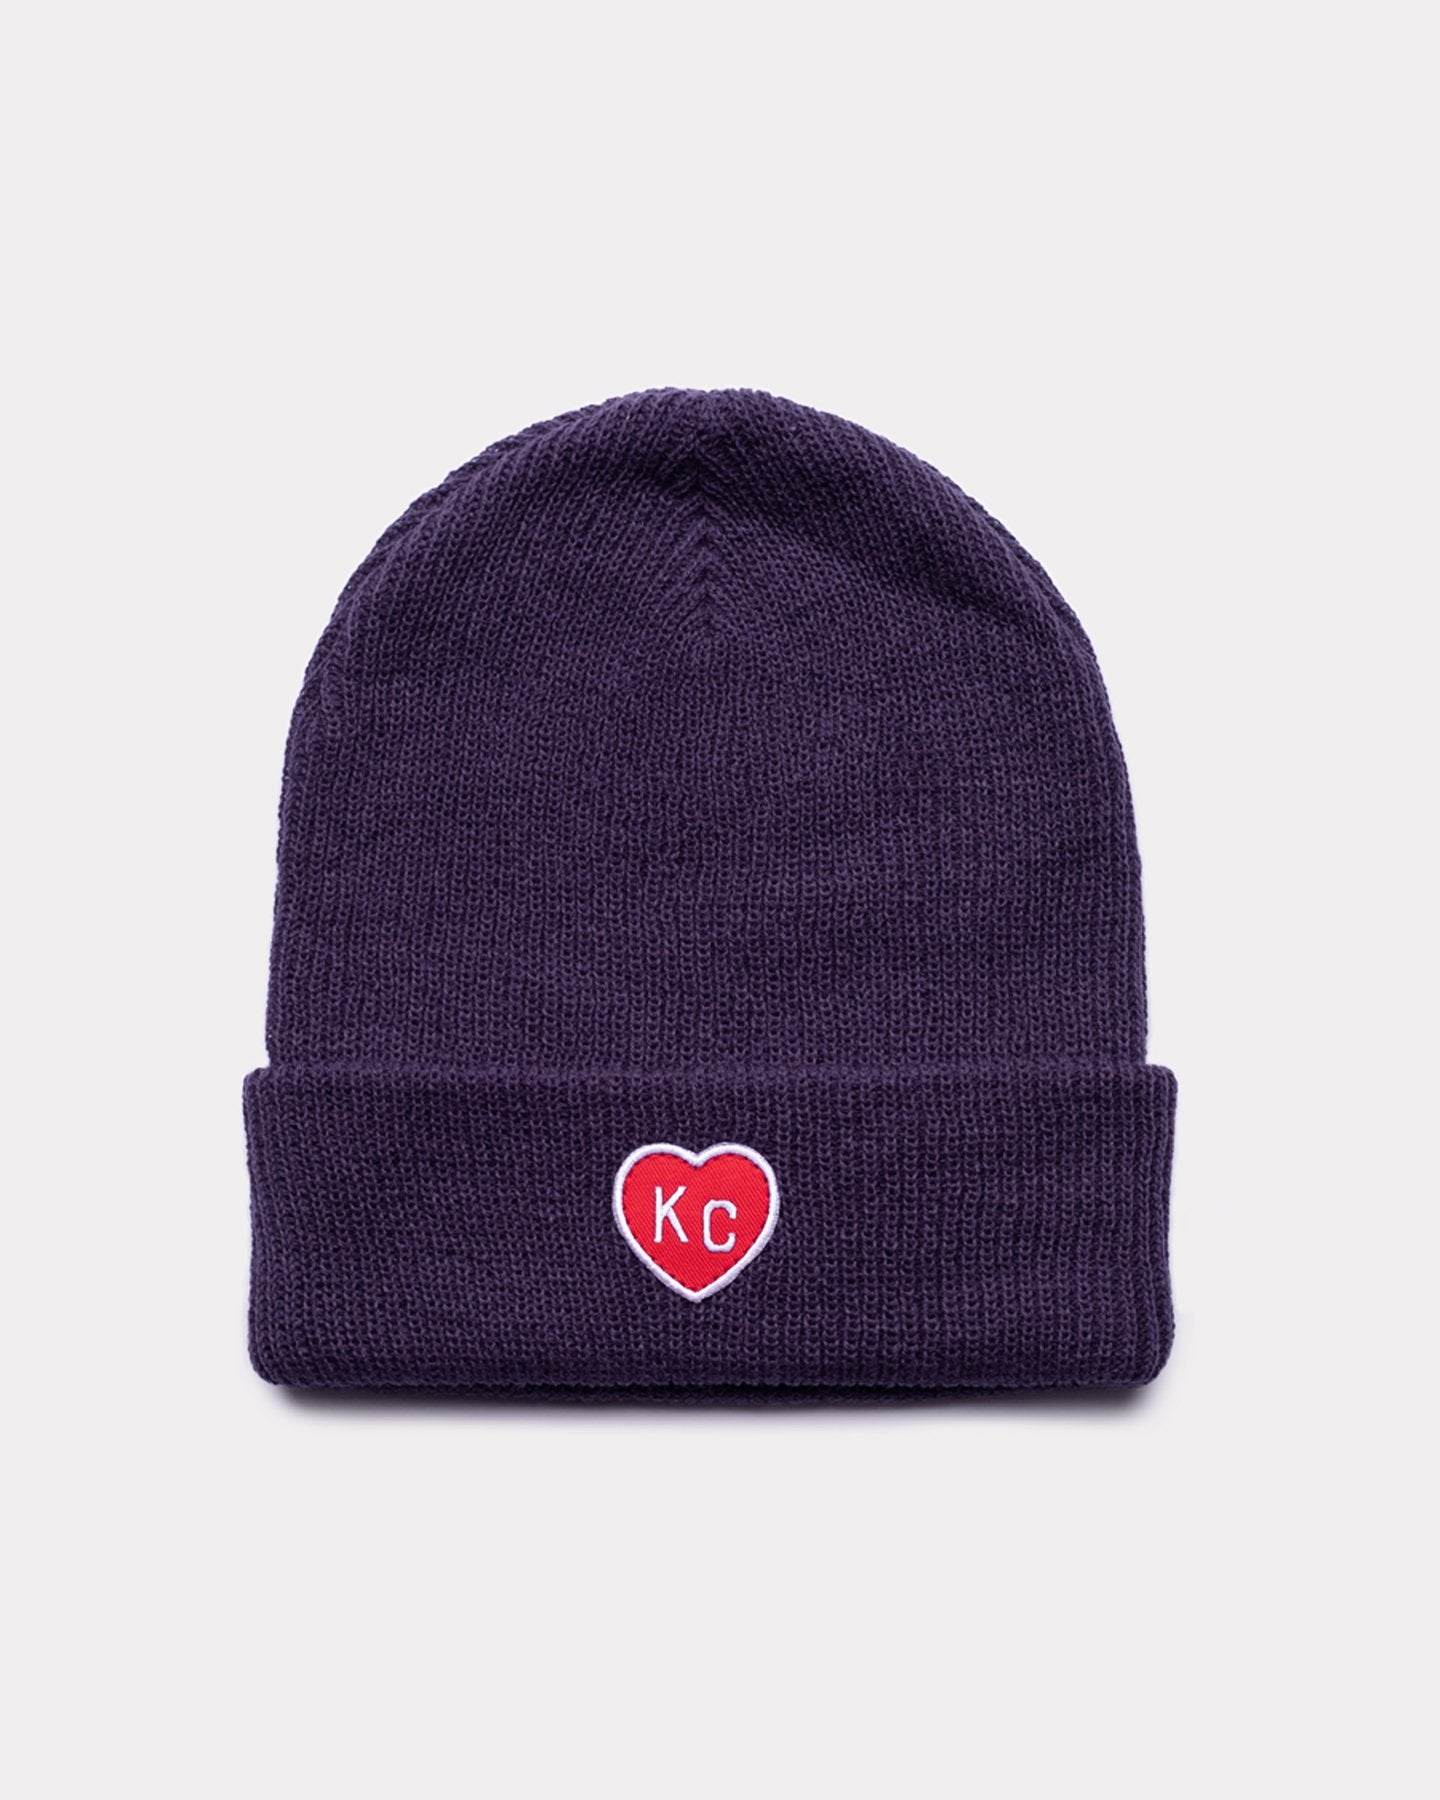 Navy & Red KC Heart Vintage Beanie Hat